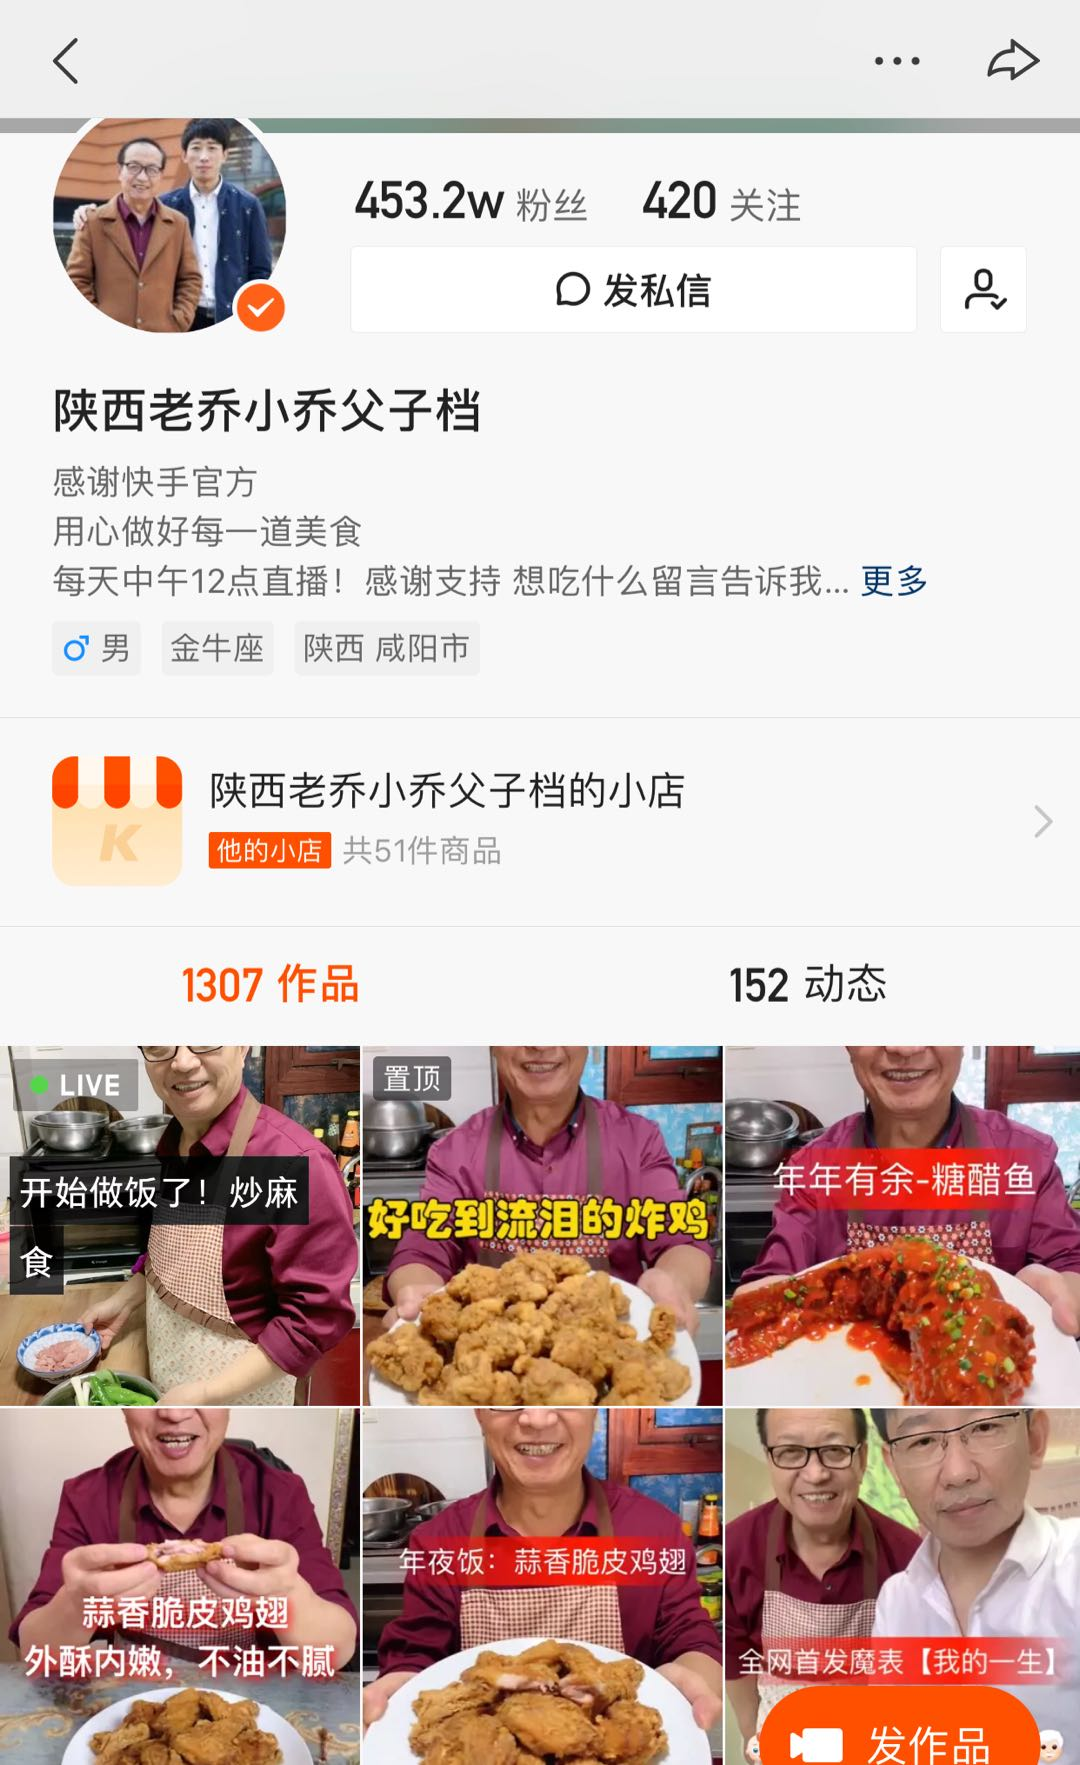 ../../Library/Containers/com.tencent.xinWeChat/Data/Library/Application%20Support/com.tencent.xinWeChat/2.0b4.0.9/be71bf3eb0b092b2ba41f8f6f1d0a1df/Message/MessageTemp/9e20f478899dc29eb19741386f9343c8/Image/18121579520417_.pic.jpg